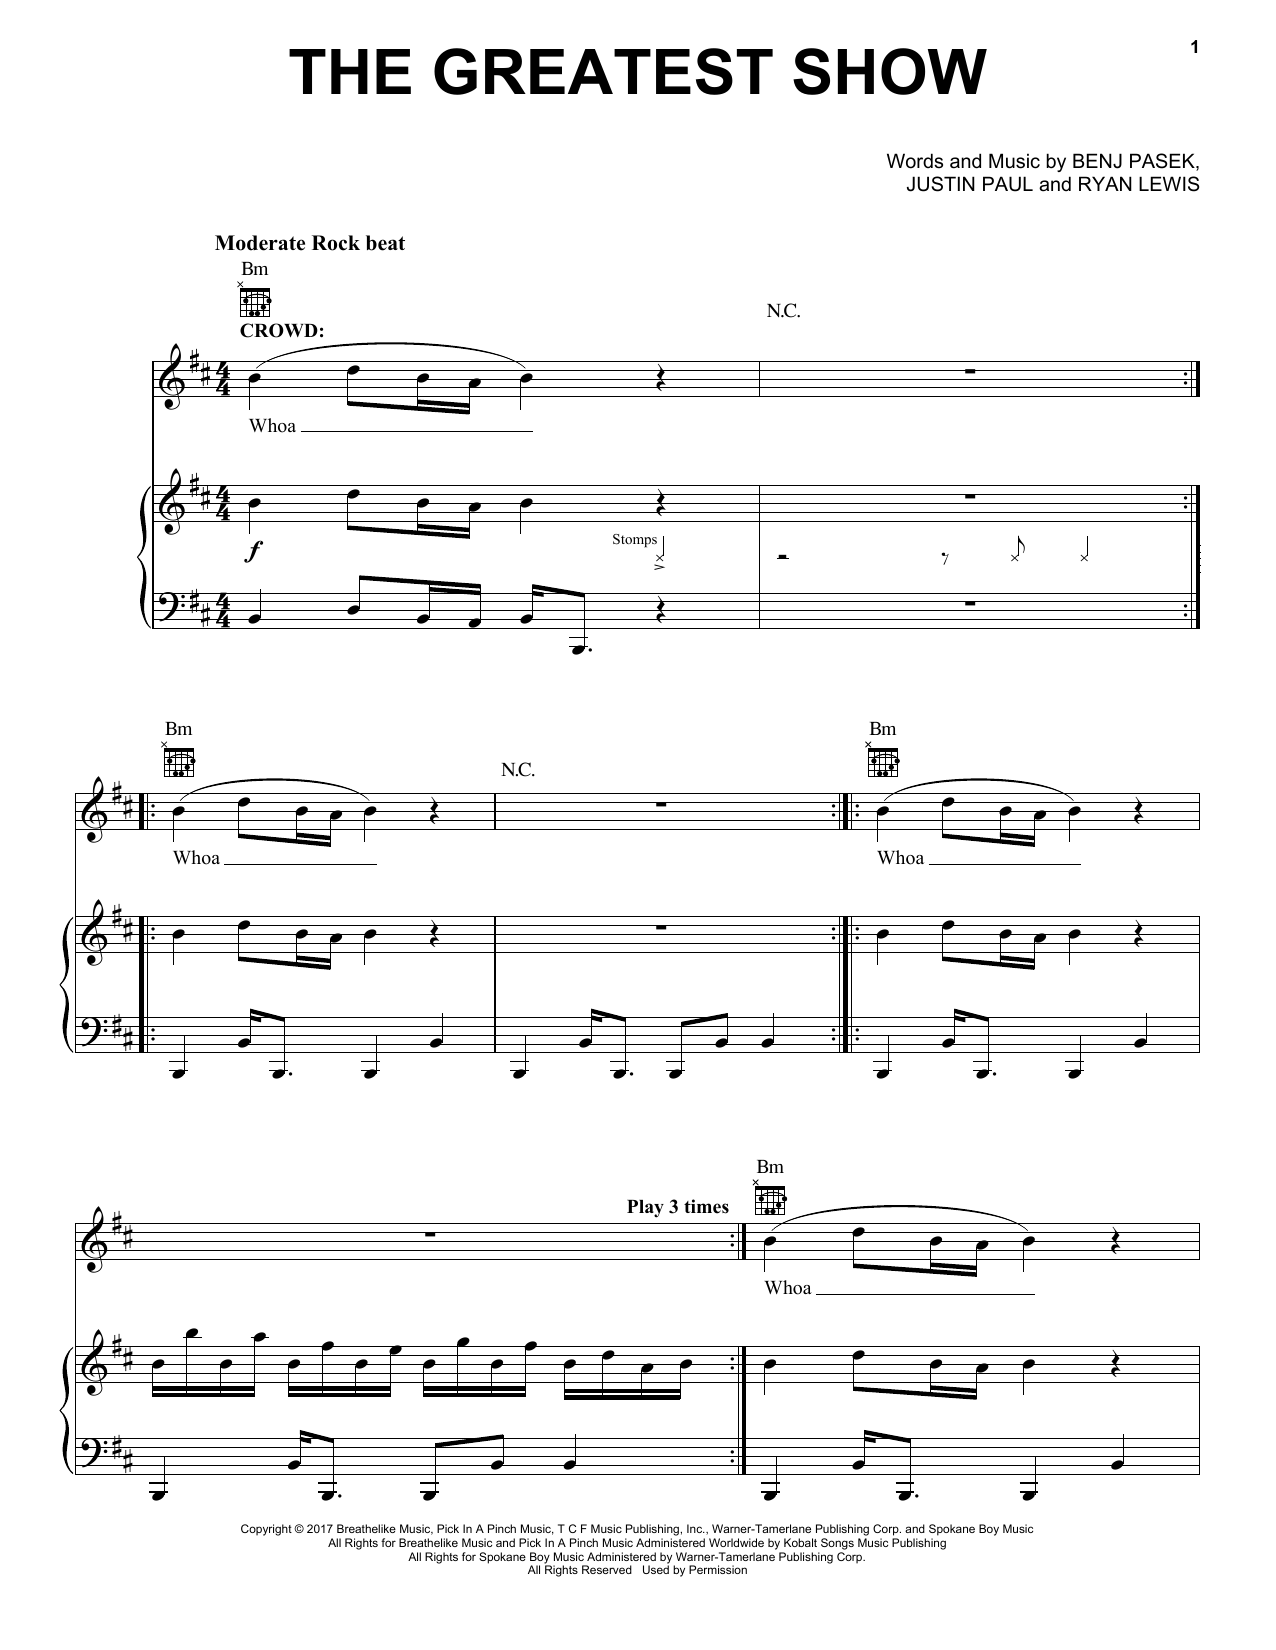 Pasek & Paul The Greatest Show (from The Greatest Showman) sheet music notes and chords. Download Printable PDF.